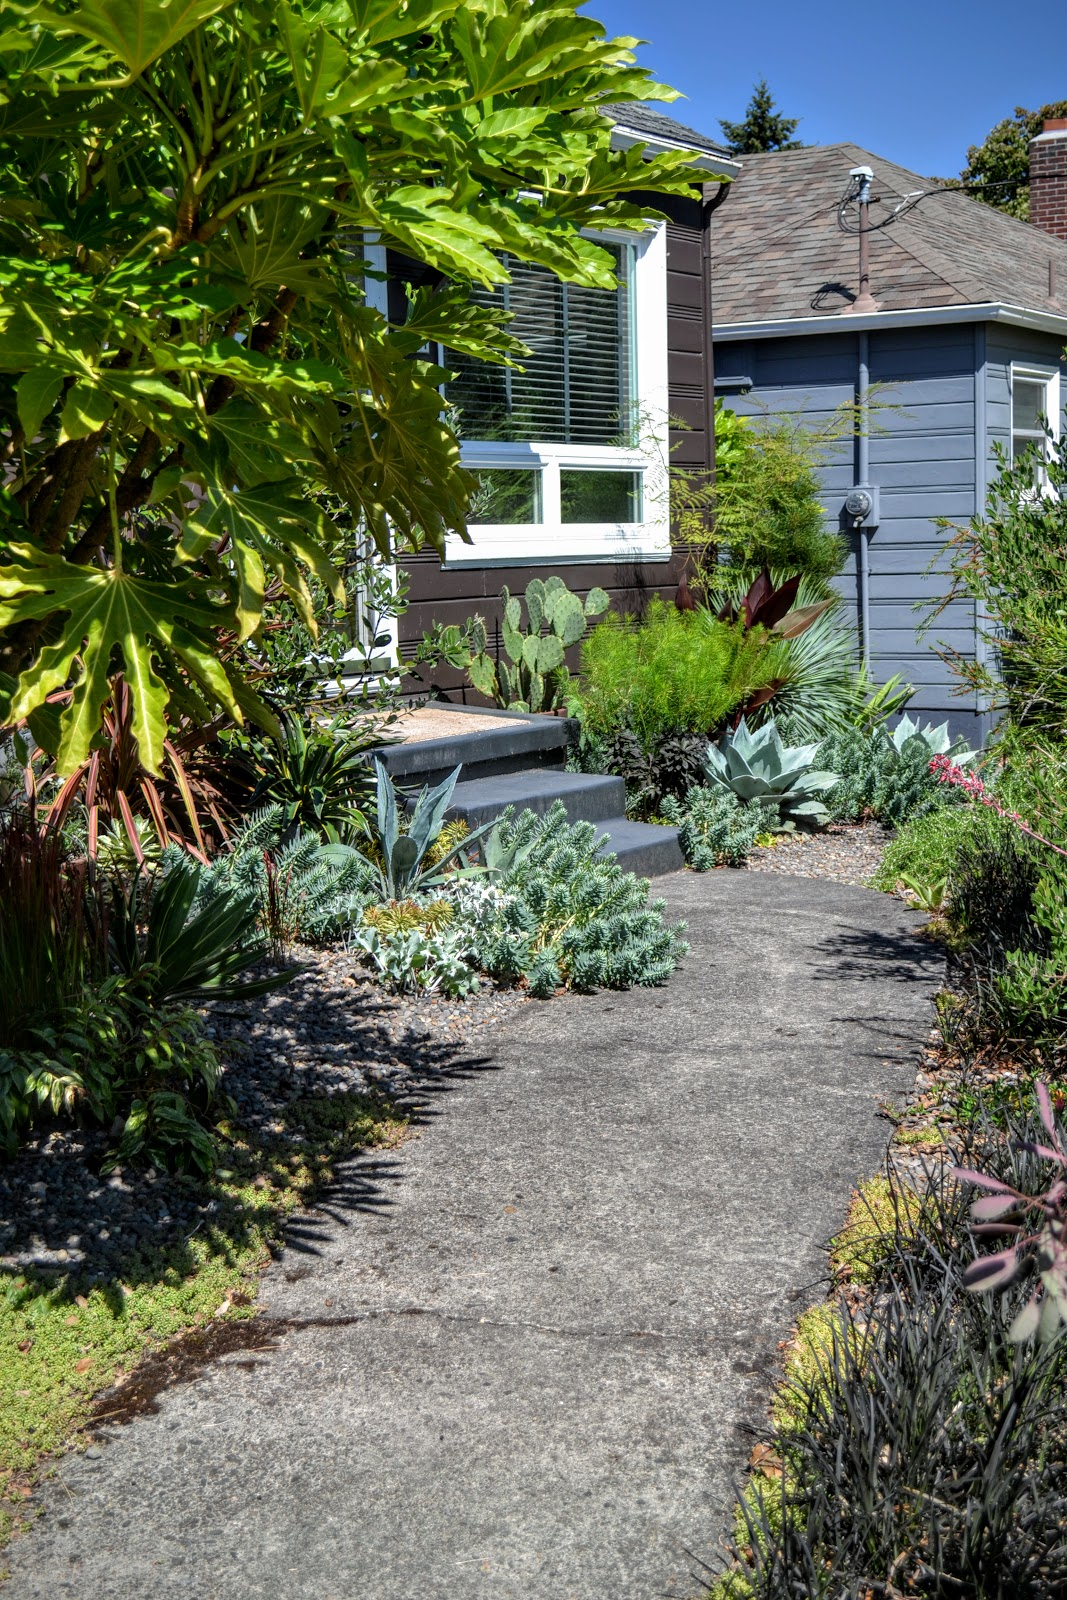 The Outlaw Gardener: What\'s Spiky, green, and Located in Portland?